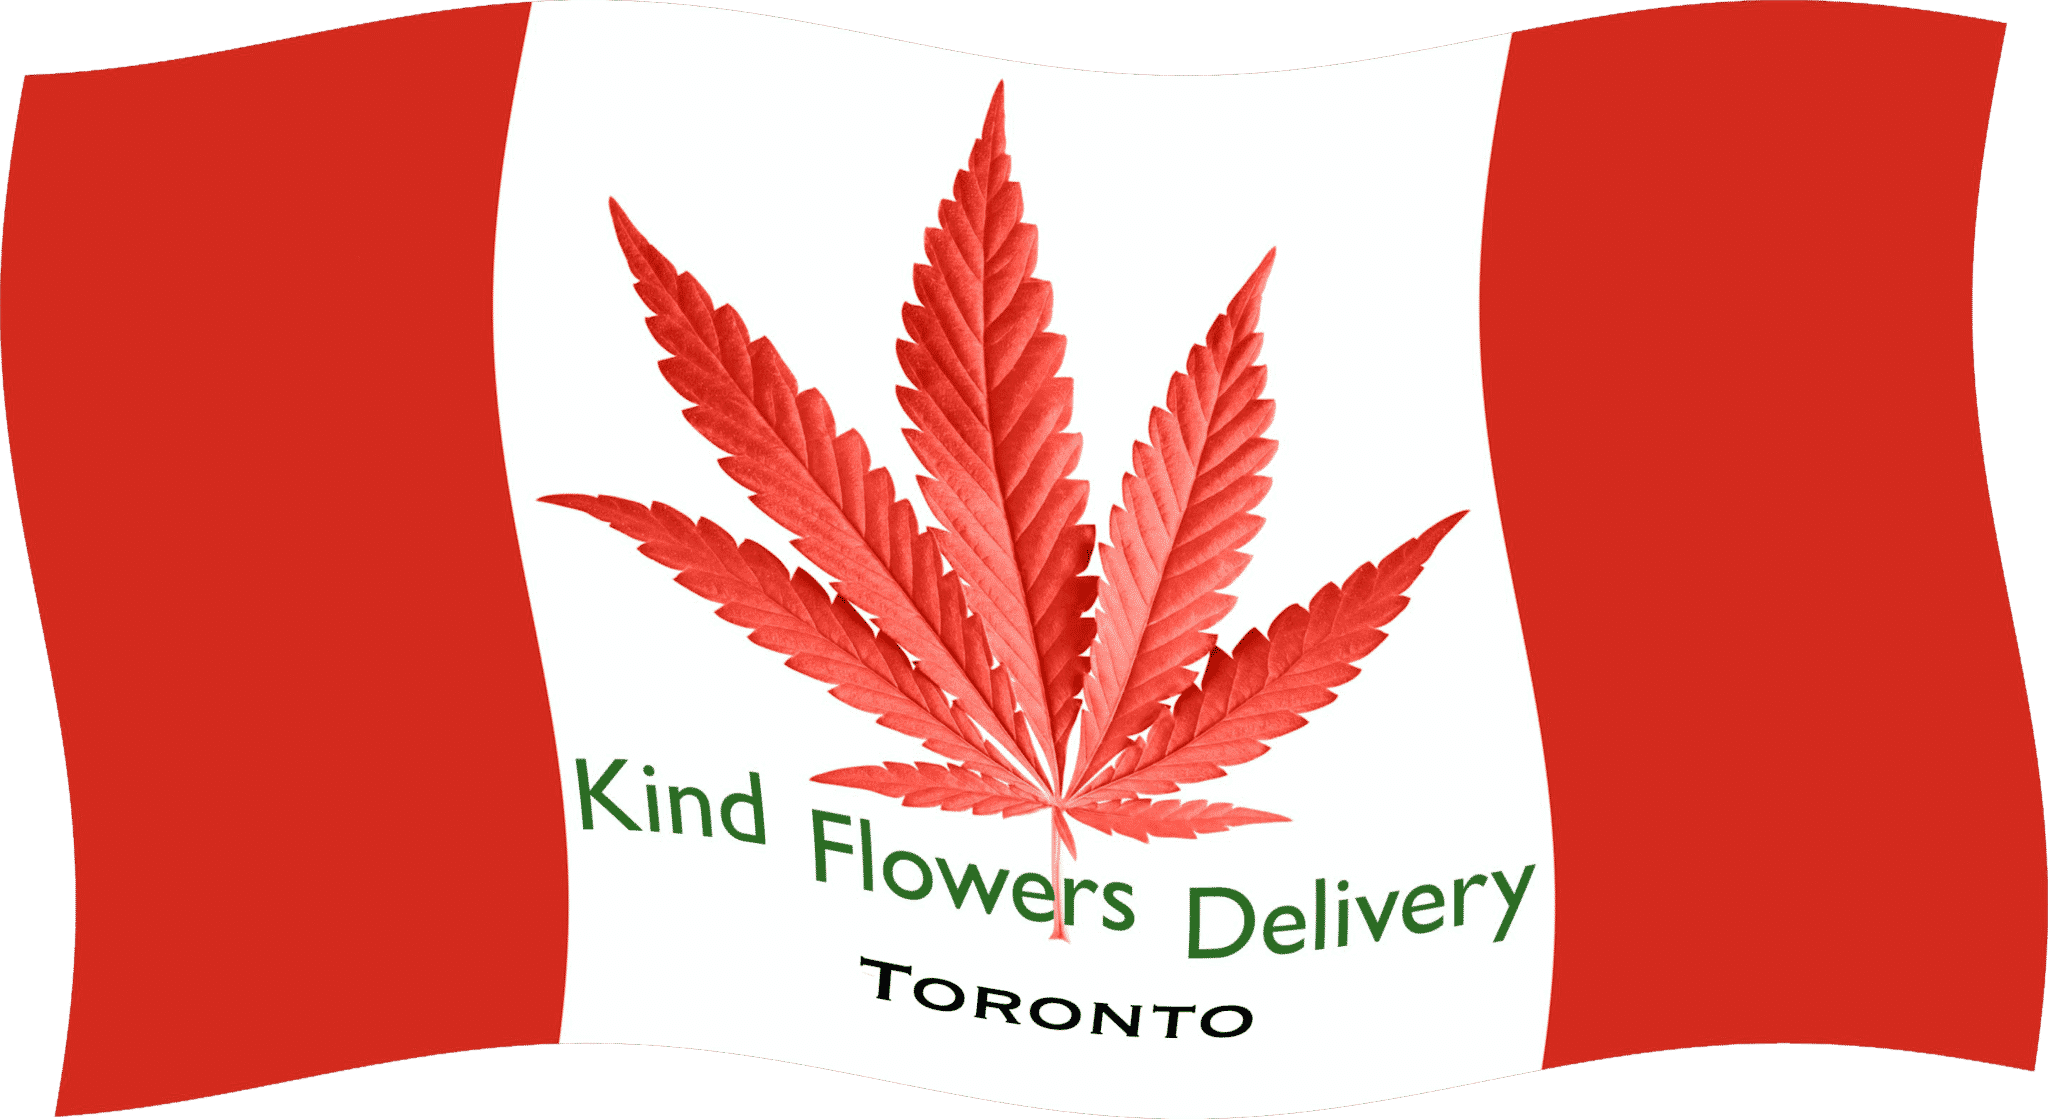 Kind Flowers logo 2020 - Coming Soon Weed Delivery Toronto - Cannabis Delivery Toronto - Marijuana Delivery Toronto - Weed Edibles Delivery Toronto - Kush Delivery Toronto - Same Day Weed Delivery in Toronto - 24/7 Weed Delivery Toronto - Hash Delivery Toronto - We are Kind Flowers - Premium Cannabis Delivery in Toronto with over 200 menu items. We're an experienced weed delivery in Toronto and we deliver all orders in a smell-proof, discreet package straight to your door. Proudly Canadian and happy to always serve you. We offer same day weed delivery toronto, cannabis delivery toronto, kush delivery toronto, edibles weed delivery toronto, hash delivery toronto, 24/7 weed delivery toronto, weed online delivery toronto